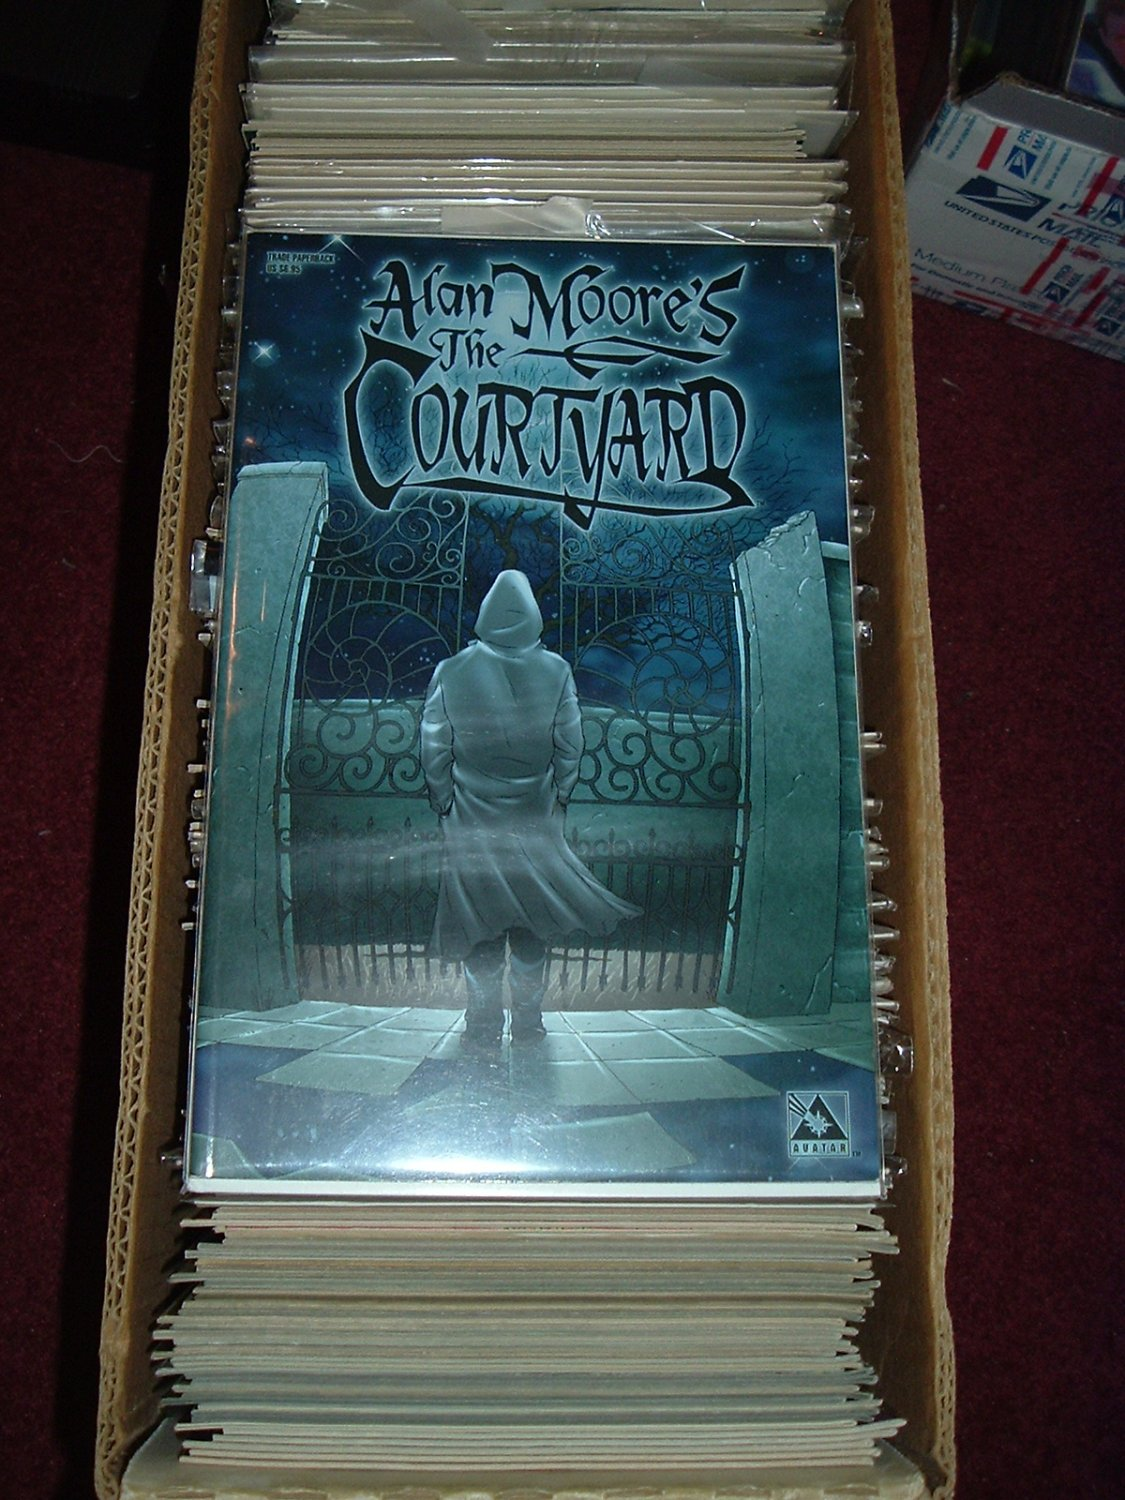 Alan Moore's: The Courtyard TPB (Avatar Press) collected edition FIRST PRINT, SAVE $$$ by COMBINING